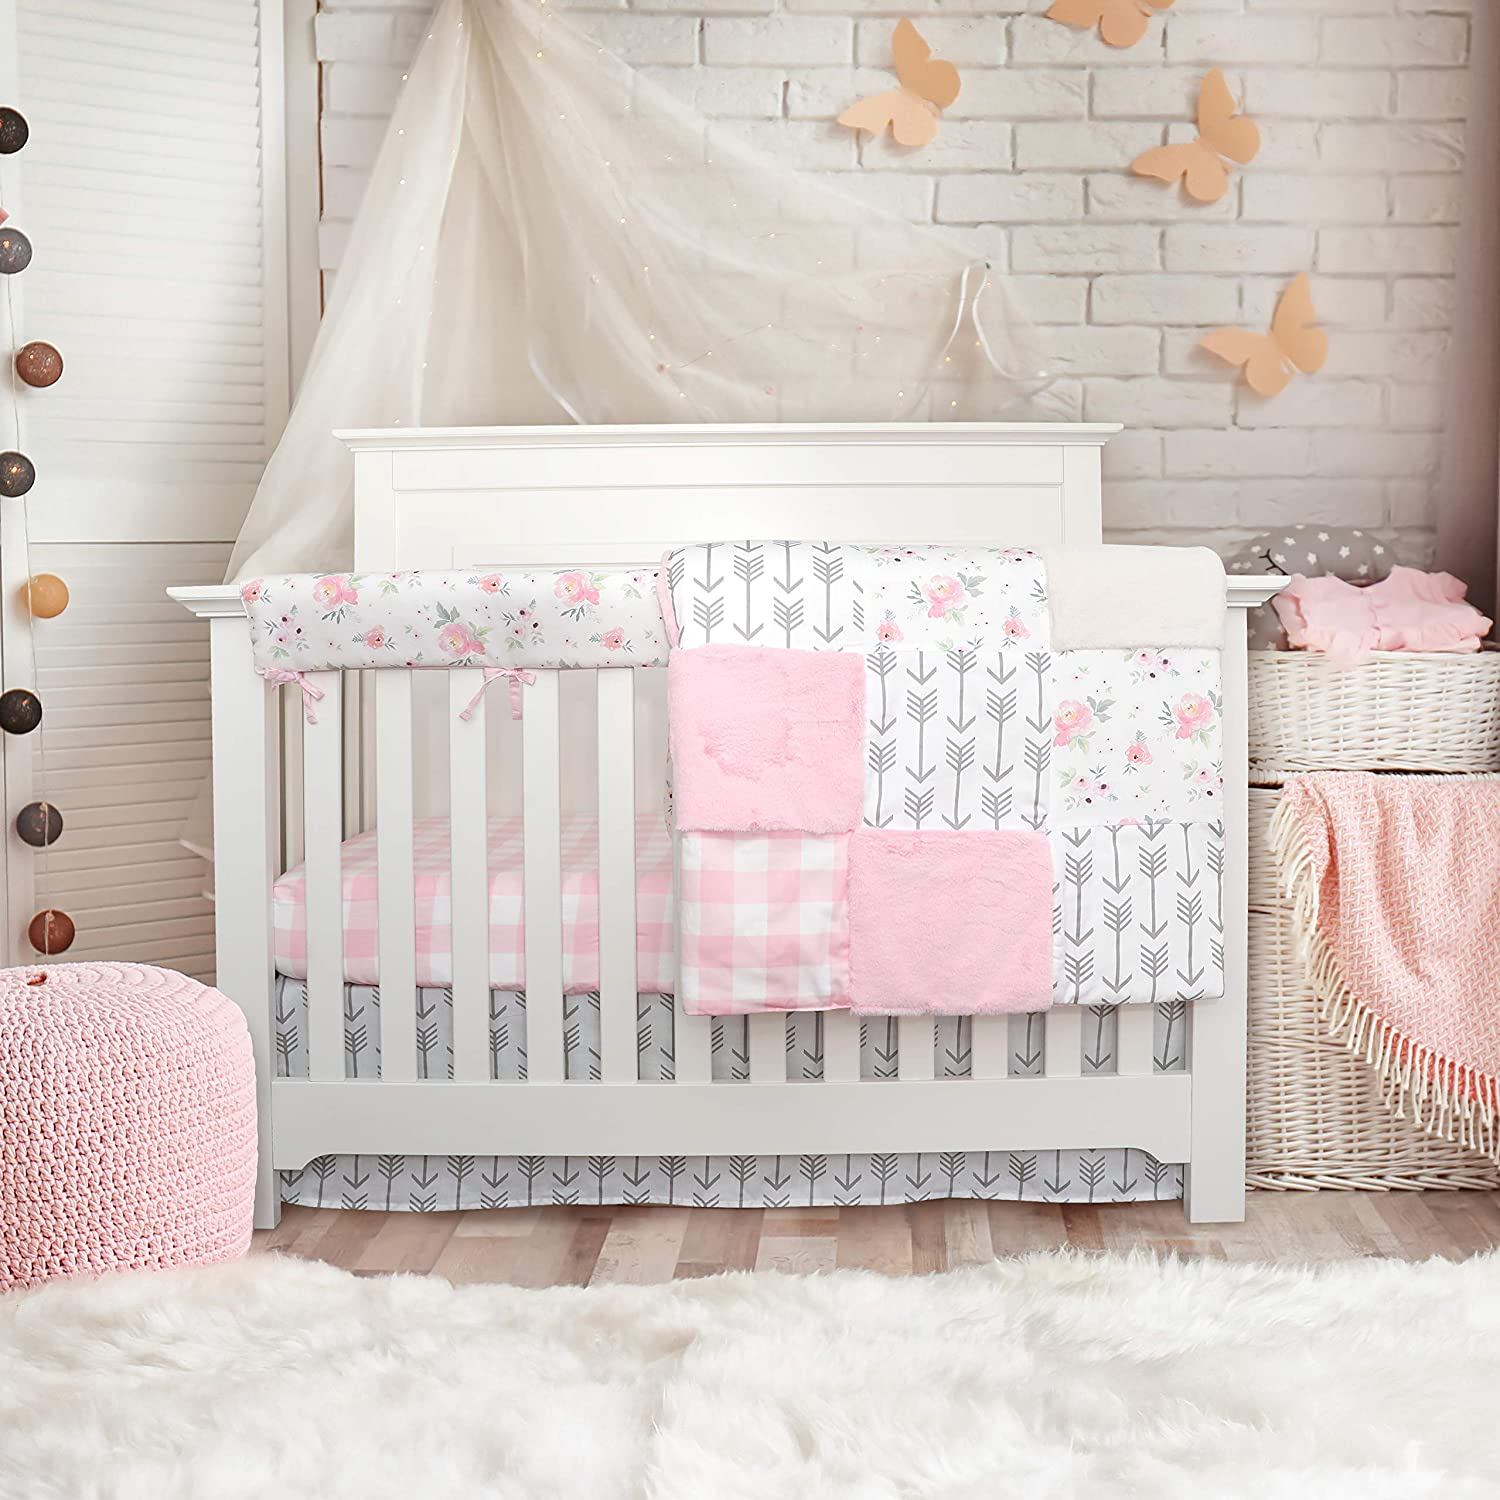 Crib bedding sets for girls - 4 Piece Floral Pink Plaid set for baby girl nursery decor | Quilt Blanket, Crib Sheet, Skirt and Rail Cover | Flowers Arrow Buffalo Plaid (4 piece Pink Floral Collection)